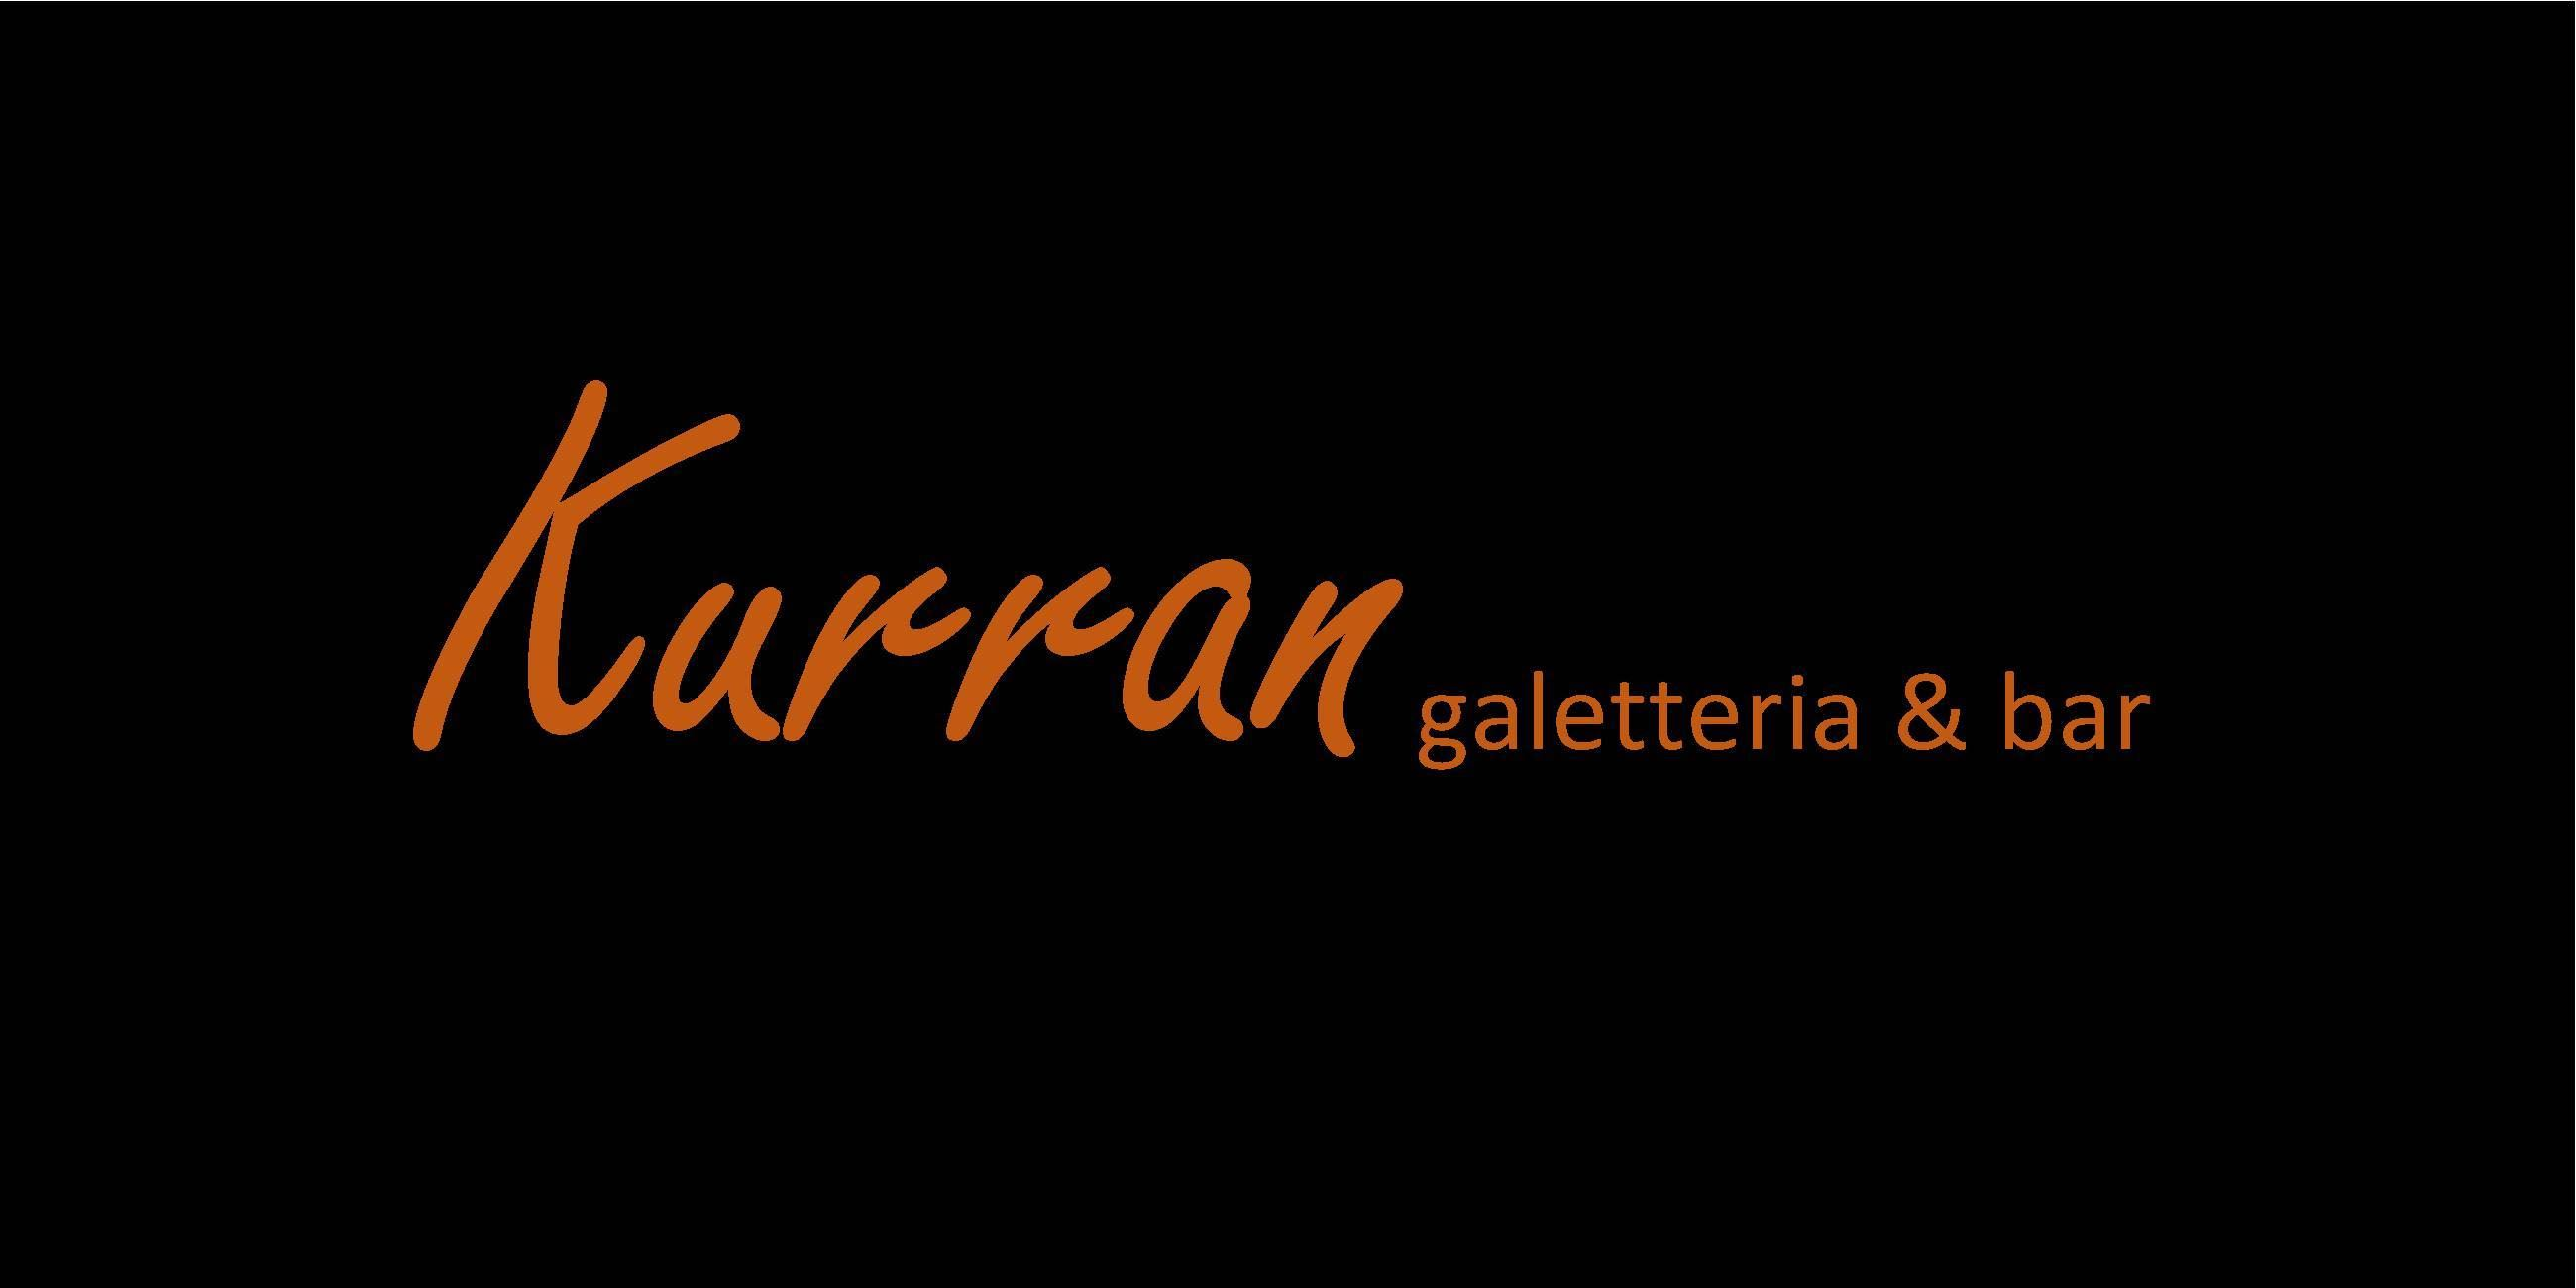 Kurran - Galetteria and bar